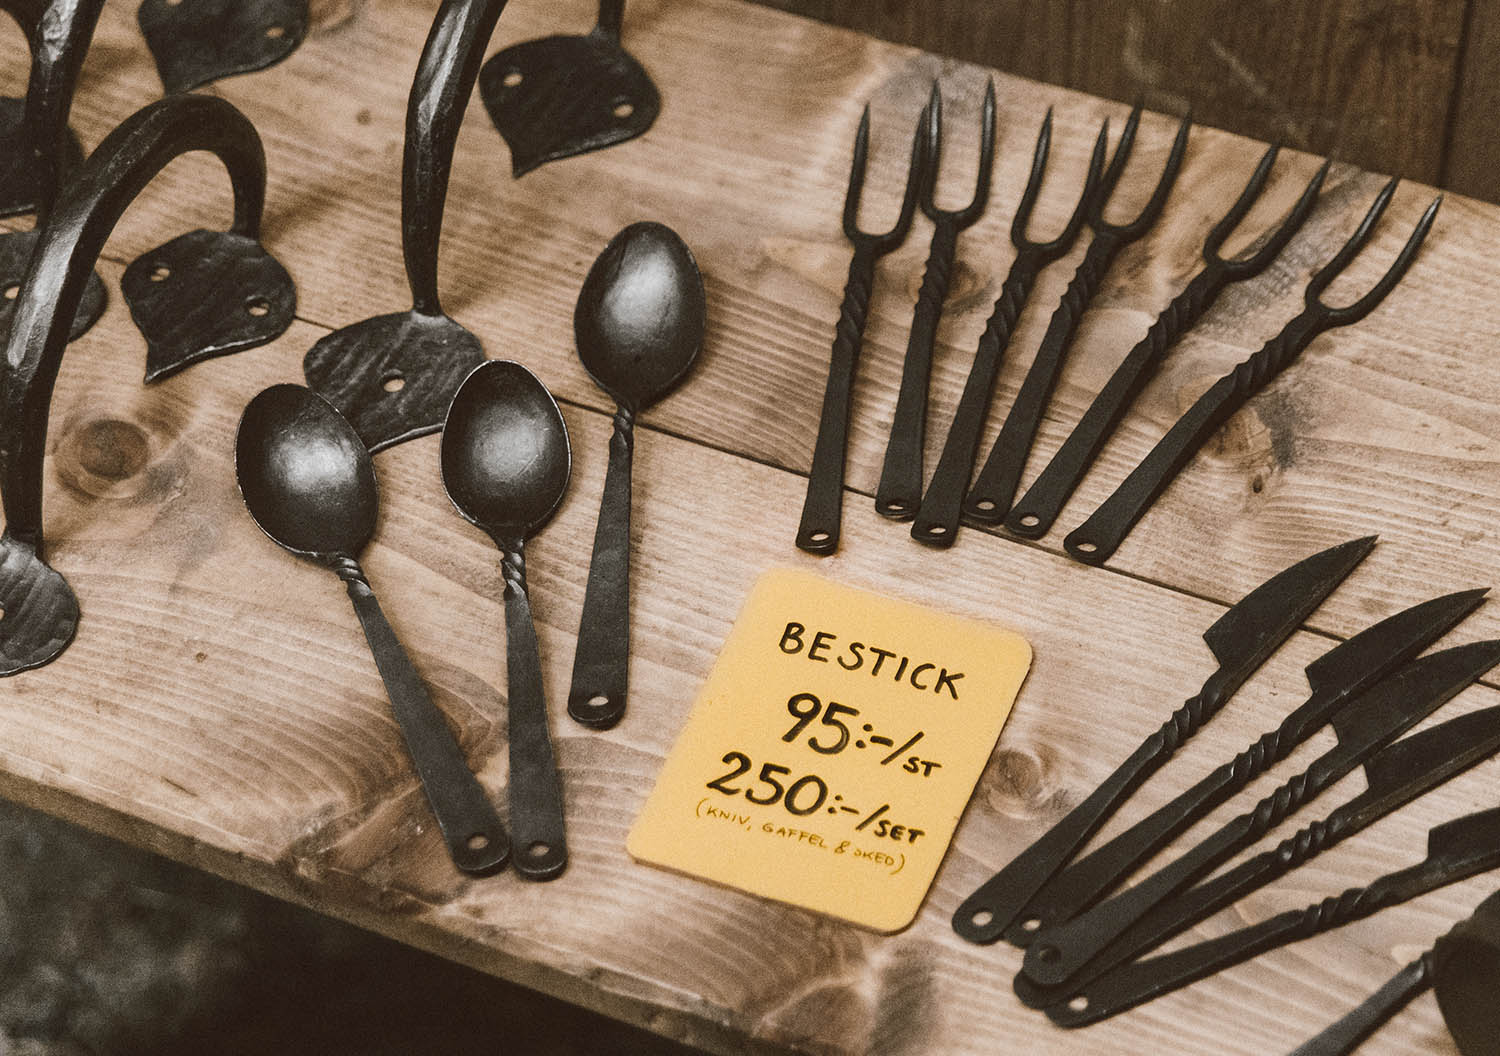 Medieval cutlery at Christmas Market